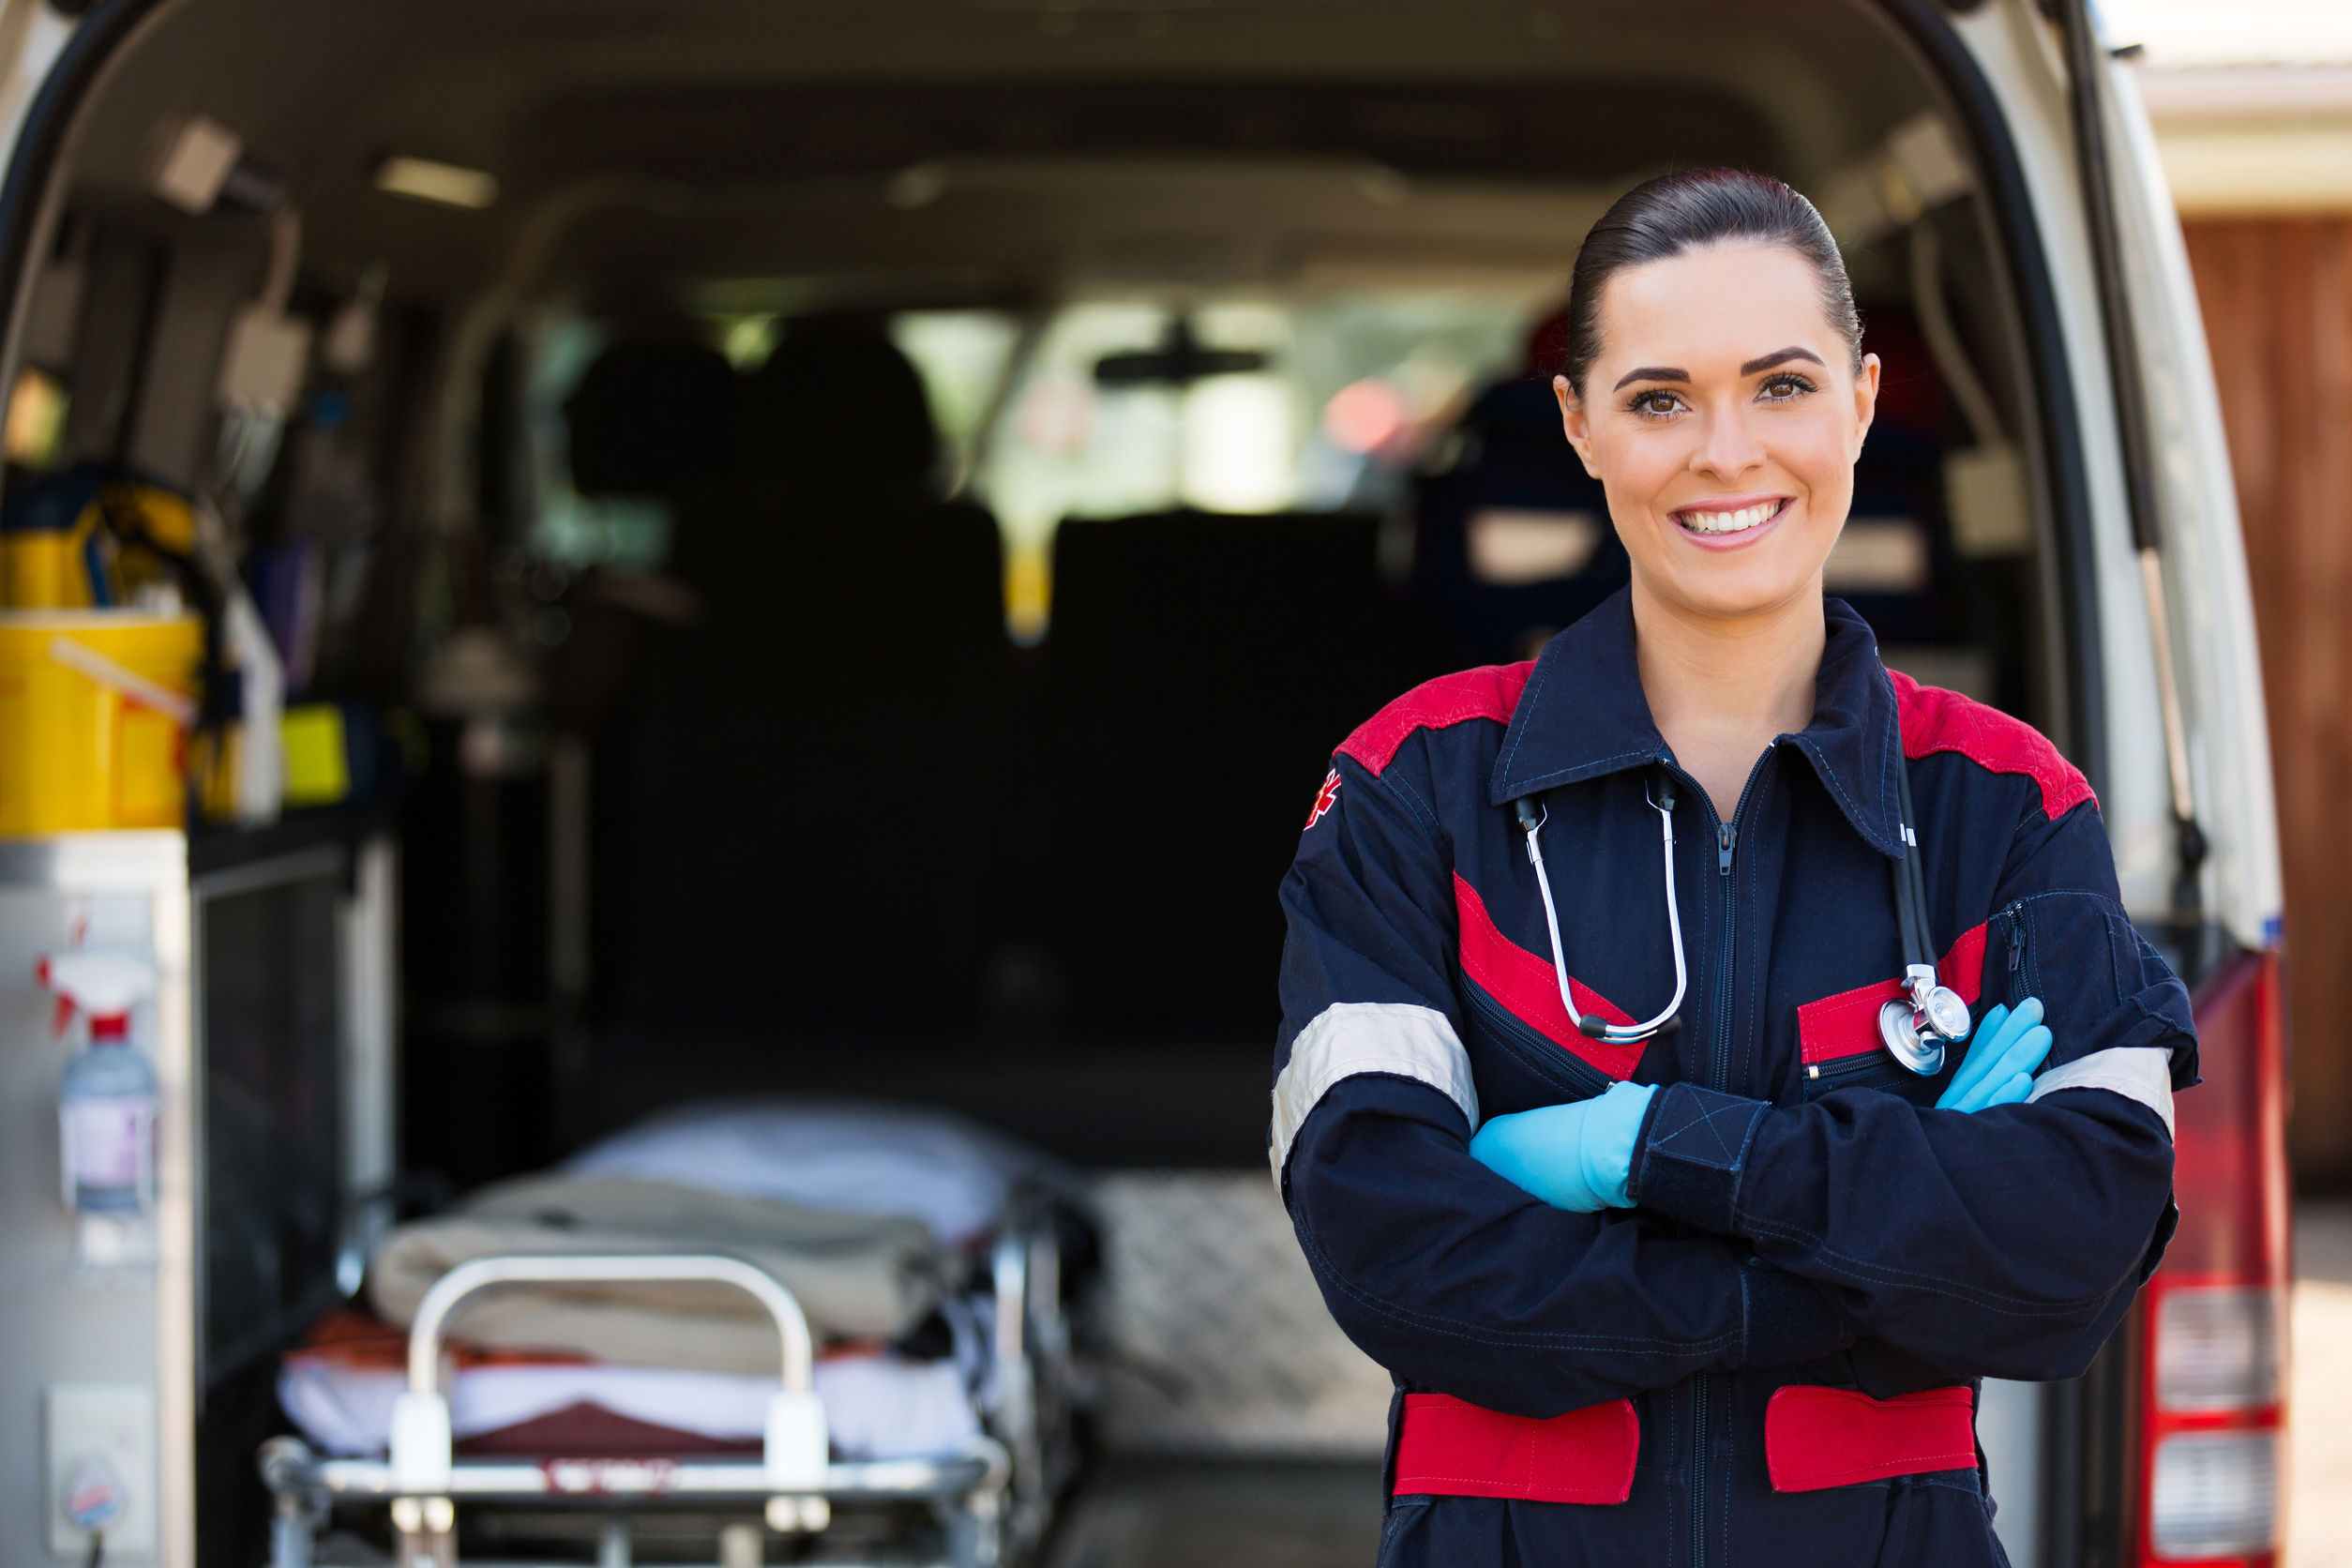 29514056 - attractive young female emergency medical service worker in front of ambulance